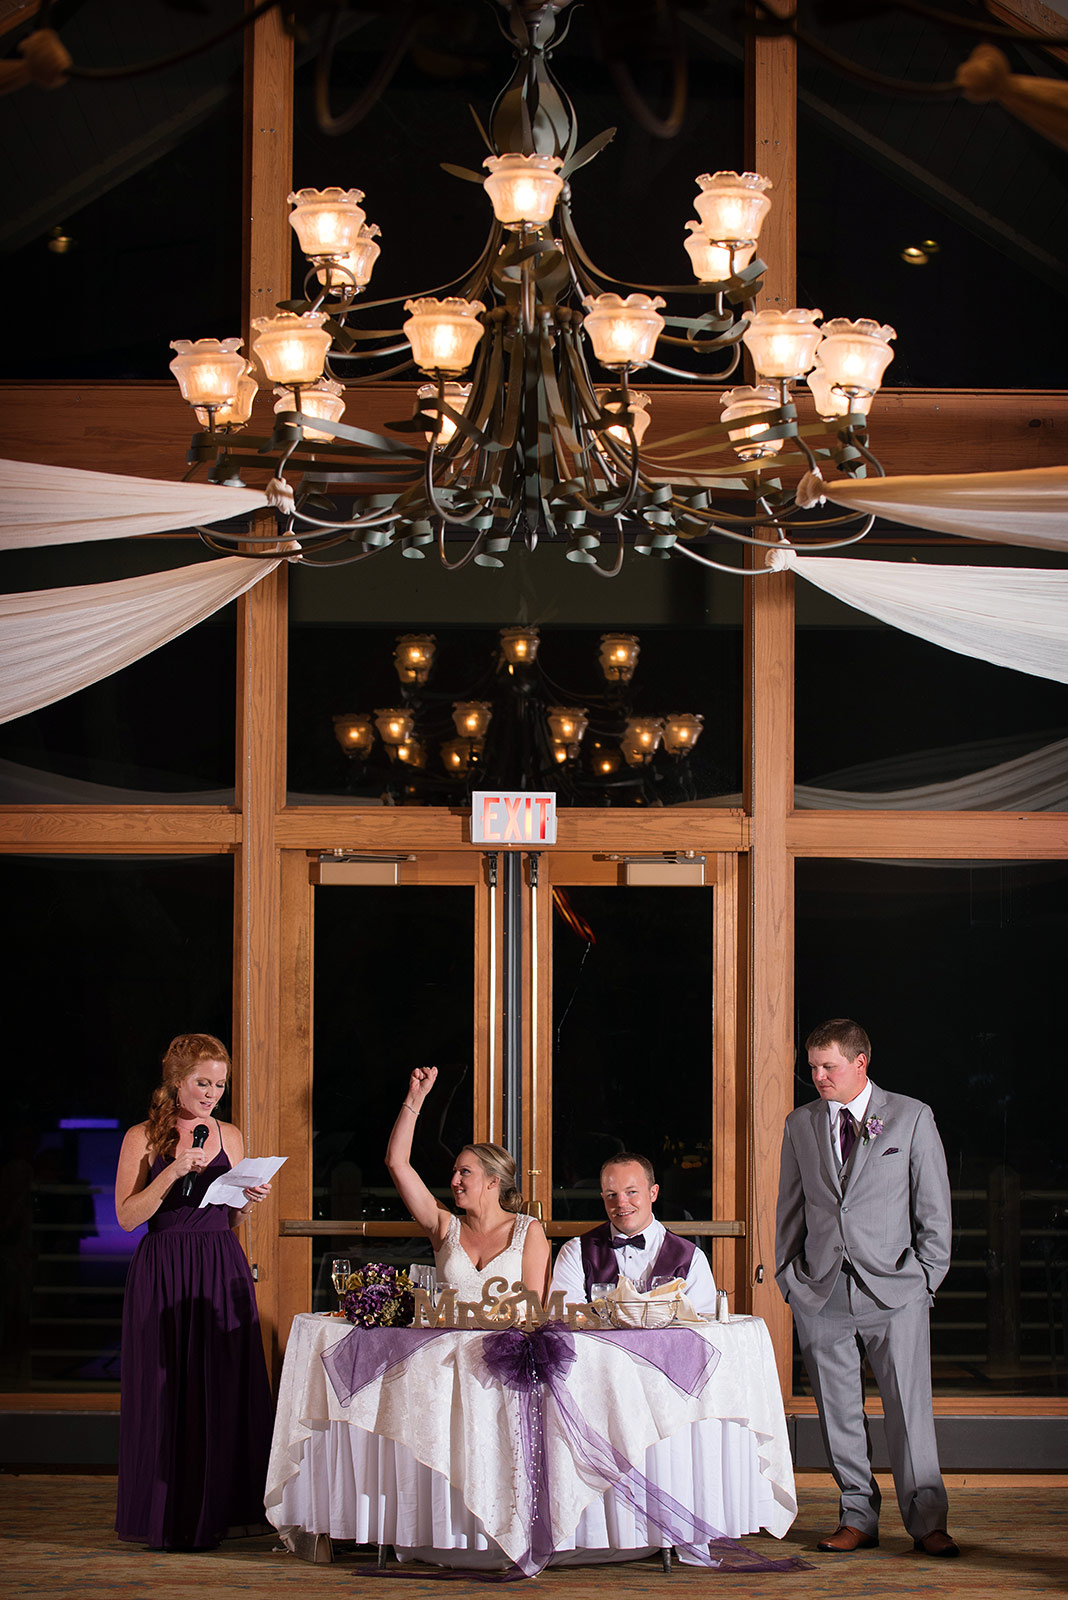 Best Man Maid Honor Toast Speech Wedding Reception